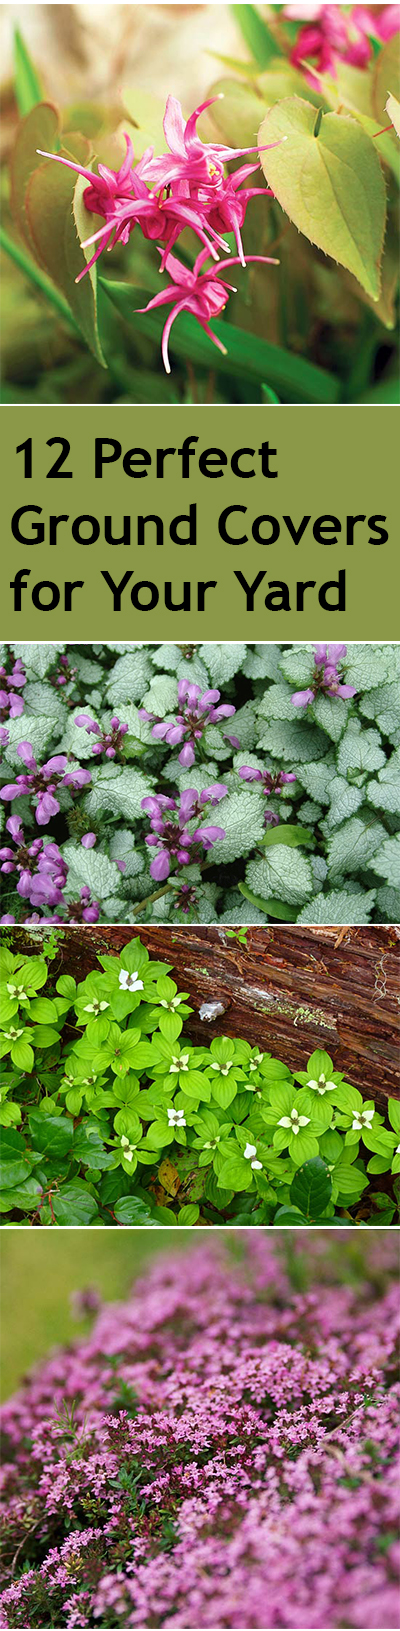 12 Perfect Ground Cover for Your Yard| Ground Cover, Ground Cover Plants, Ground Cover Plants for Sun, Ground Cover Plants Shade, Gardening Ideas, Gardening Design, Backyard Gardening, Garden Design,  Garden Tips, Outdoor DIY, Outdoor Patio Ideas, Outdoor Ideas #GroundCover #GroundCoverIdeas #GroundCoverPlants #GardeningDesign #GroundCoverPlants